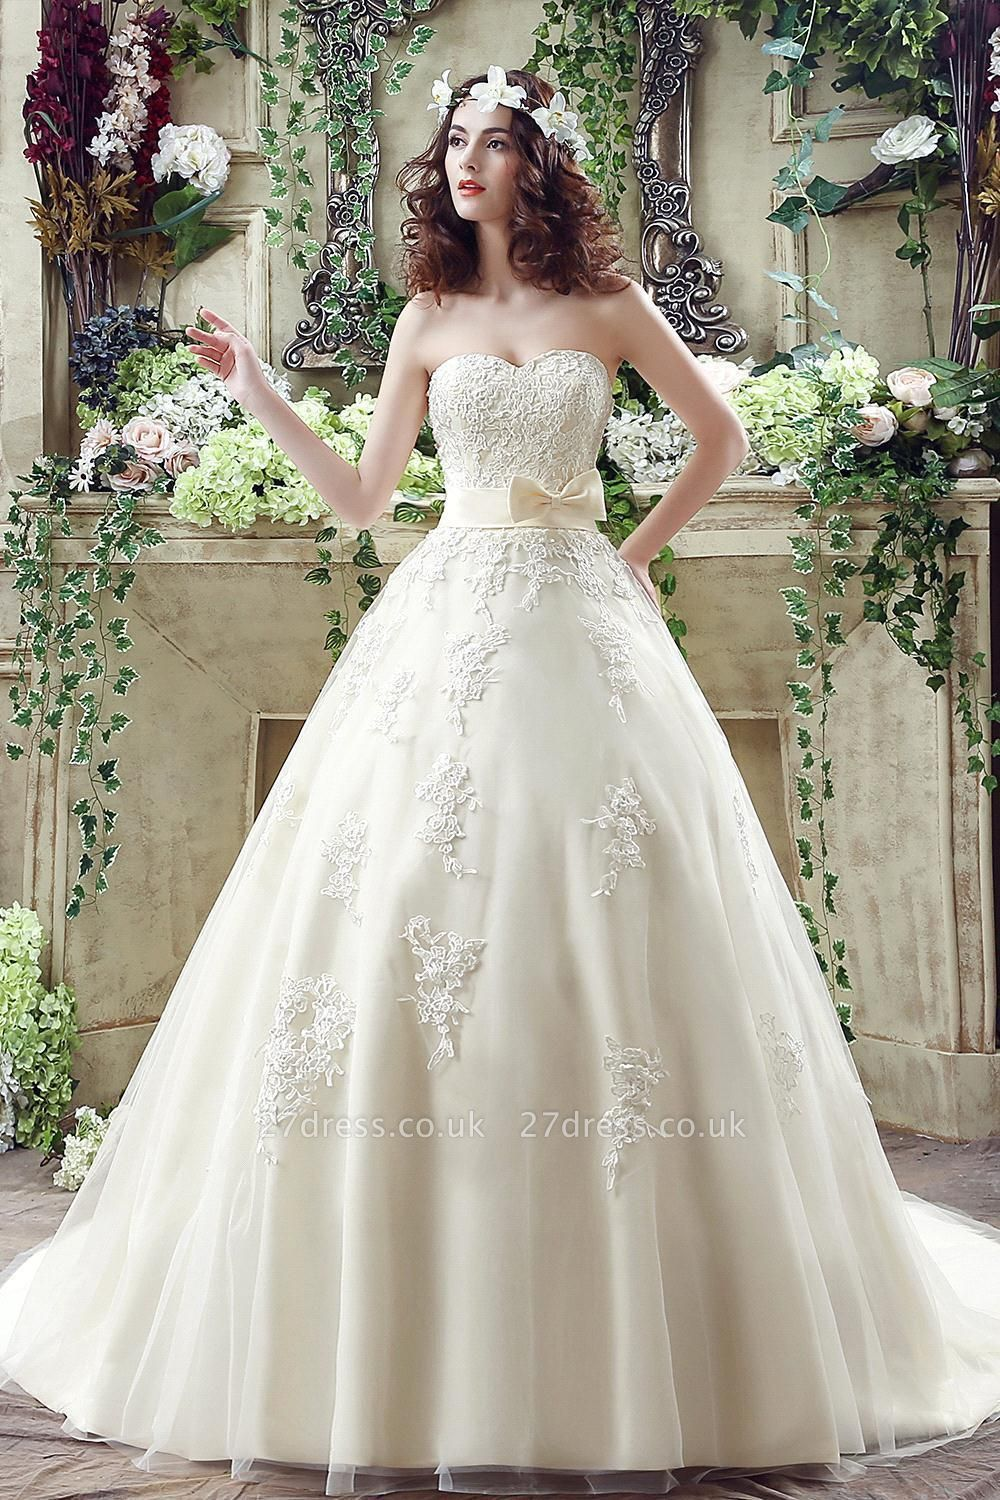 Newest Sweetheart Lace Appliques Wedding Dress Bowknot Sweep Train